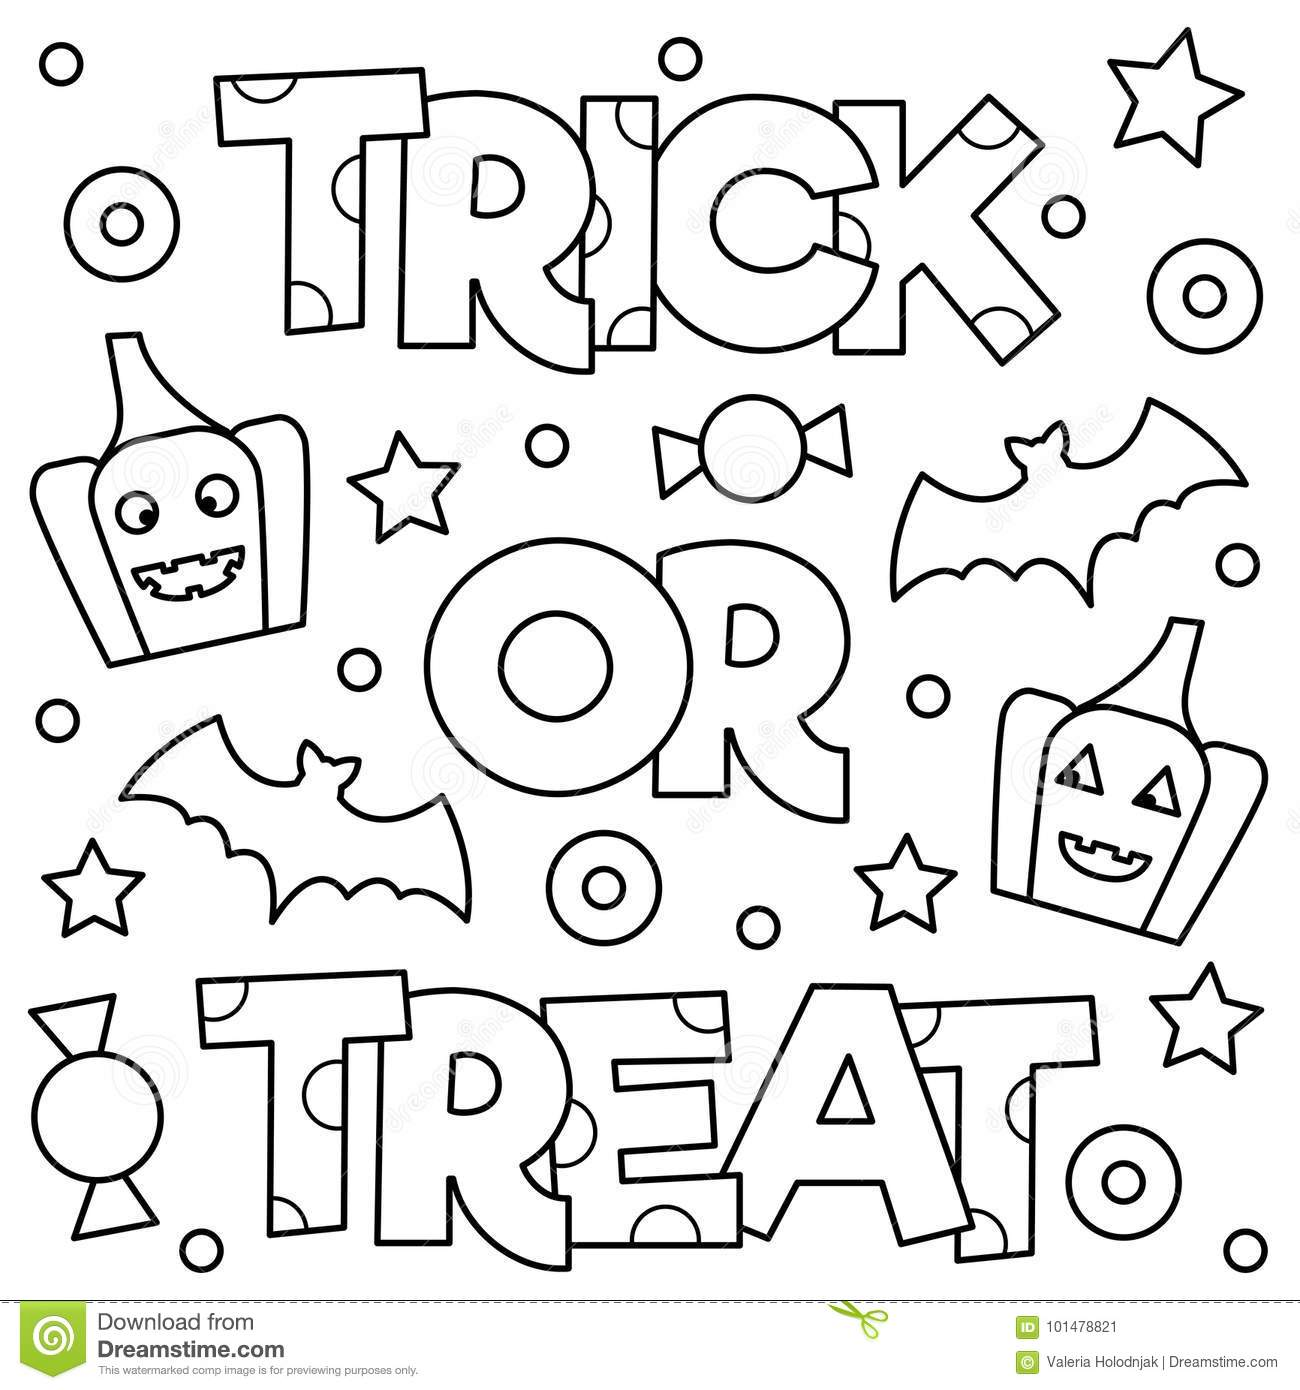 trick or treat coloring pages Trick Or Treat. Coloring Page. Vector Illustration. Stock Vector  trick or treat coloring pages